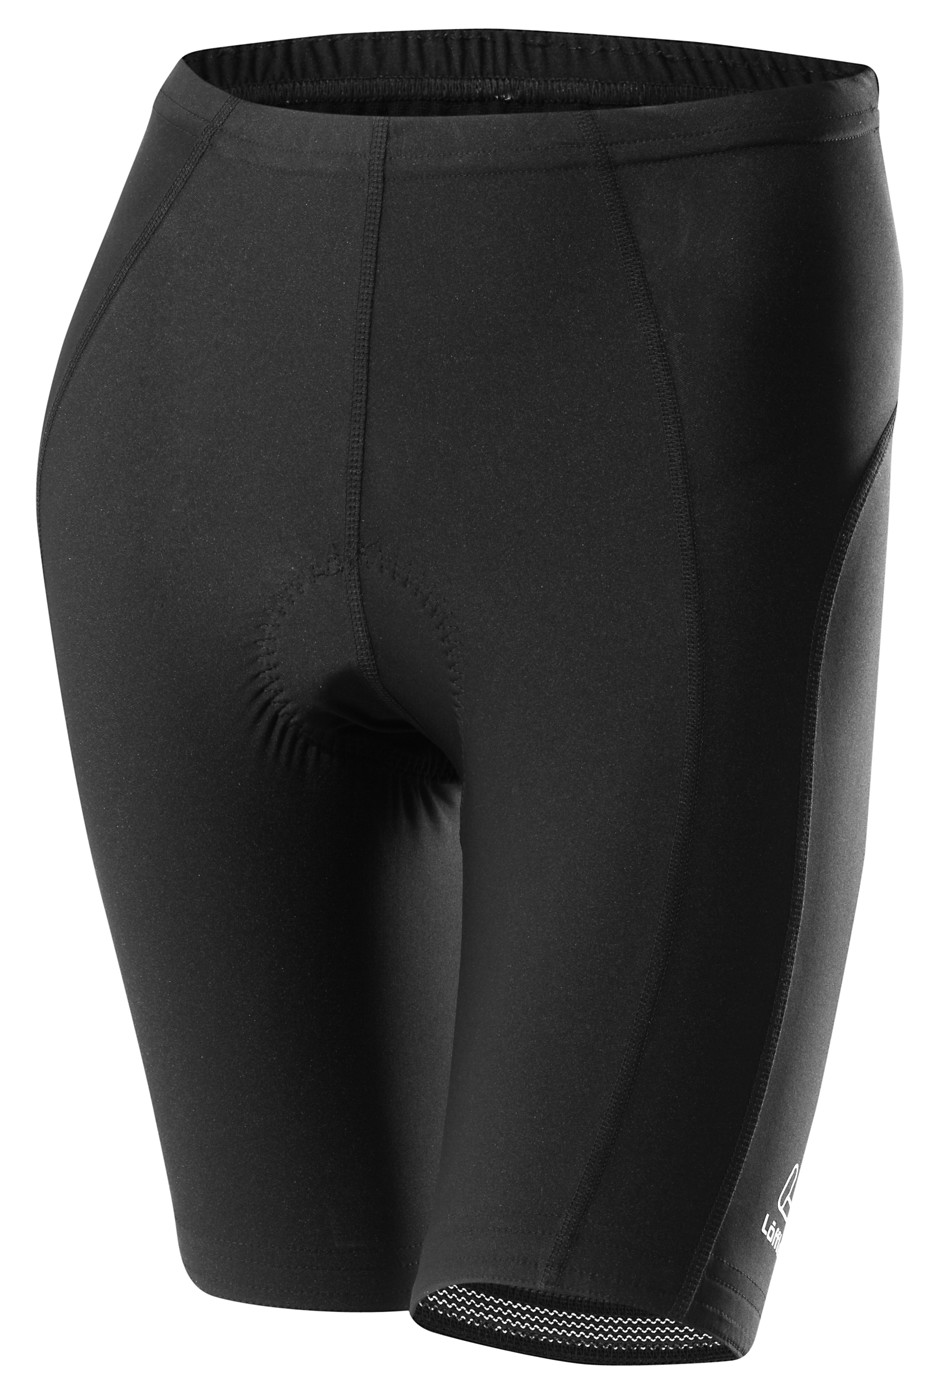 LÖFFLER W BIKE TIGHTS BASIC GEL - Damen